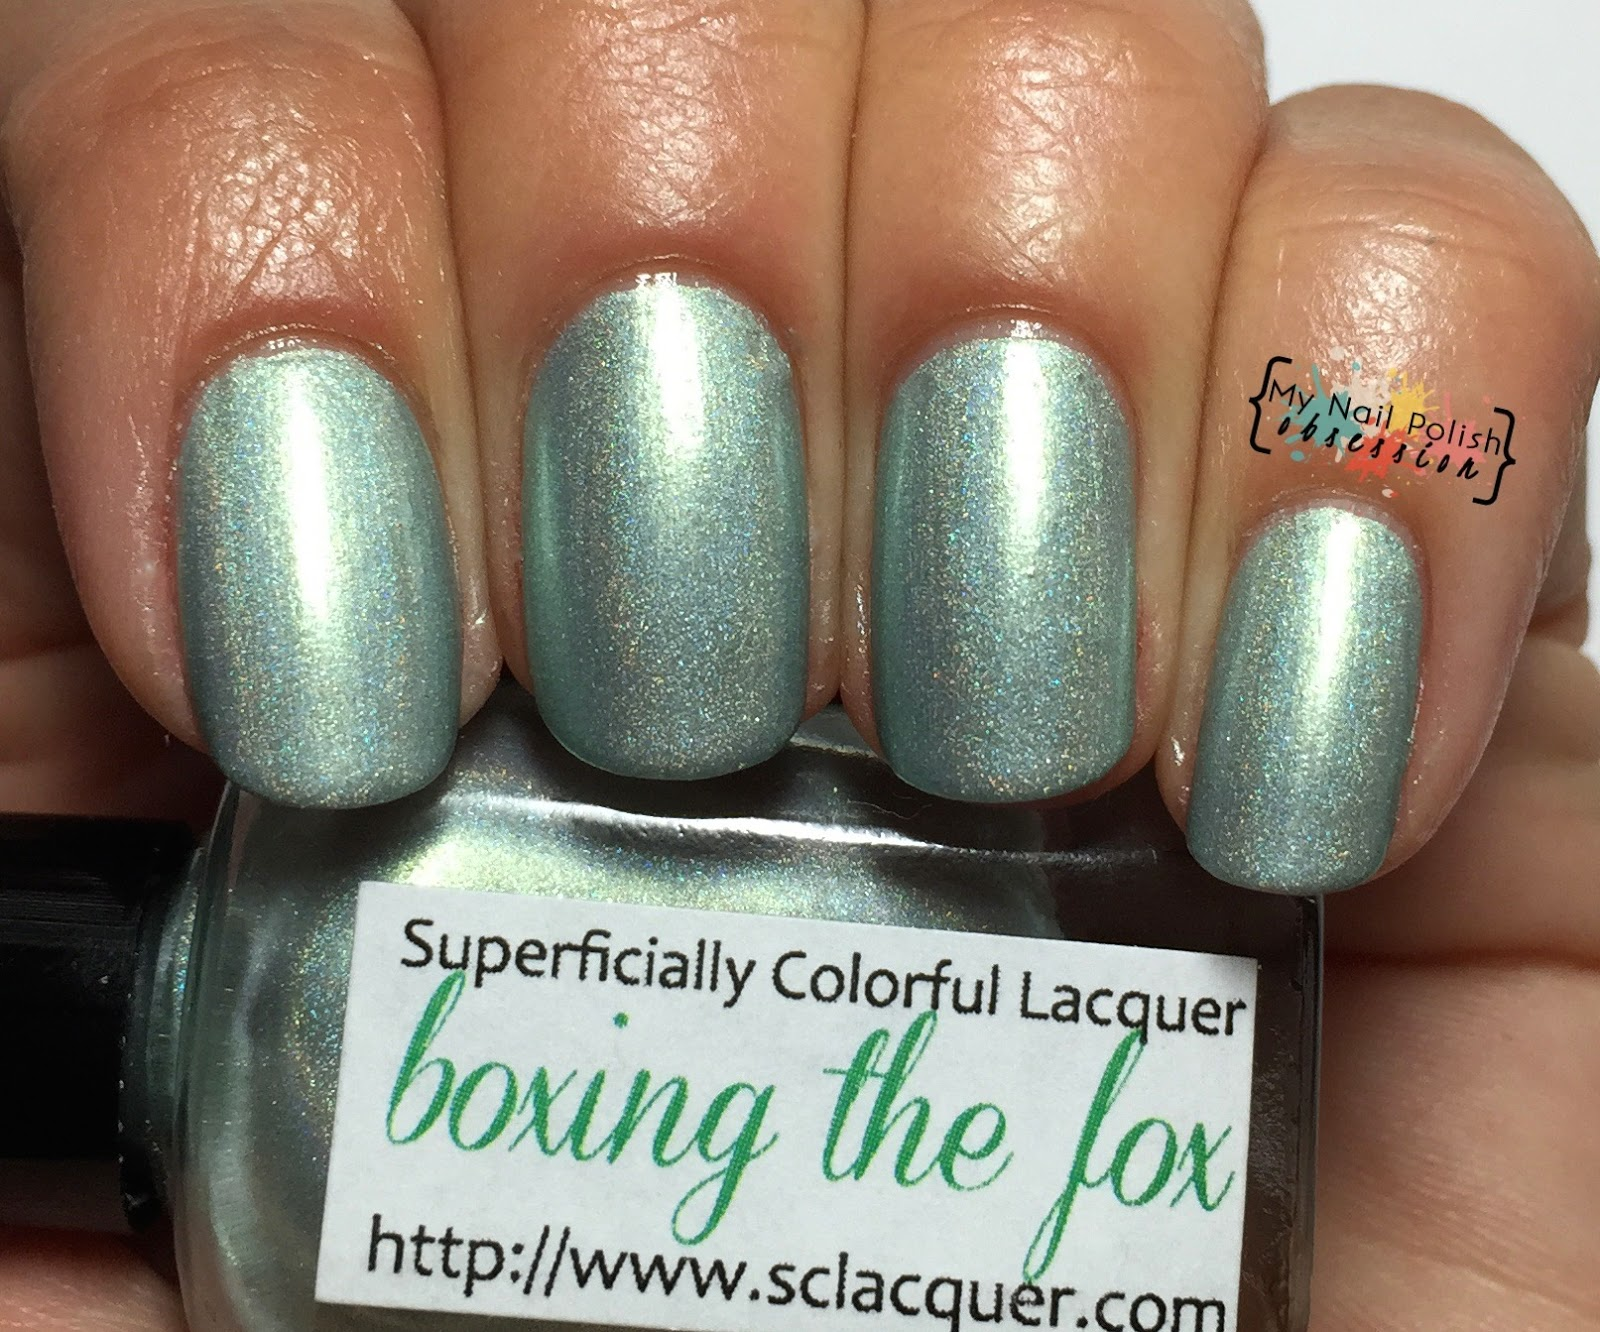 Superficially Colorful Lacquer Boxing the Fox